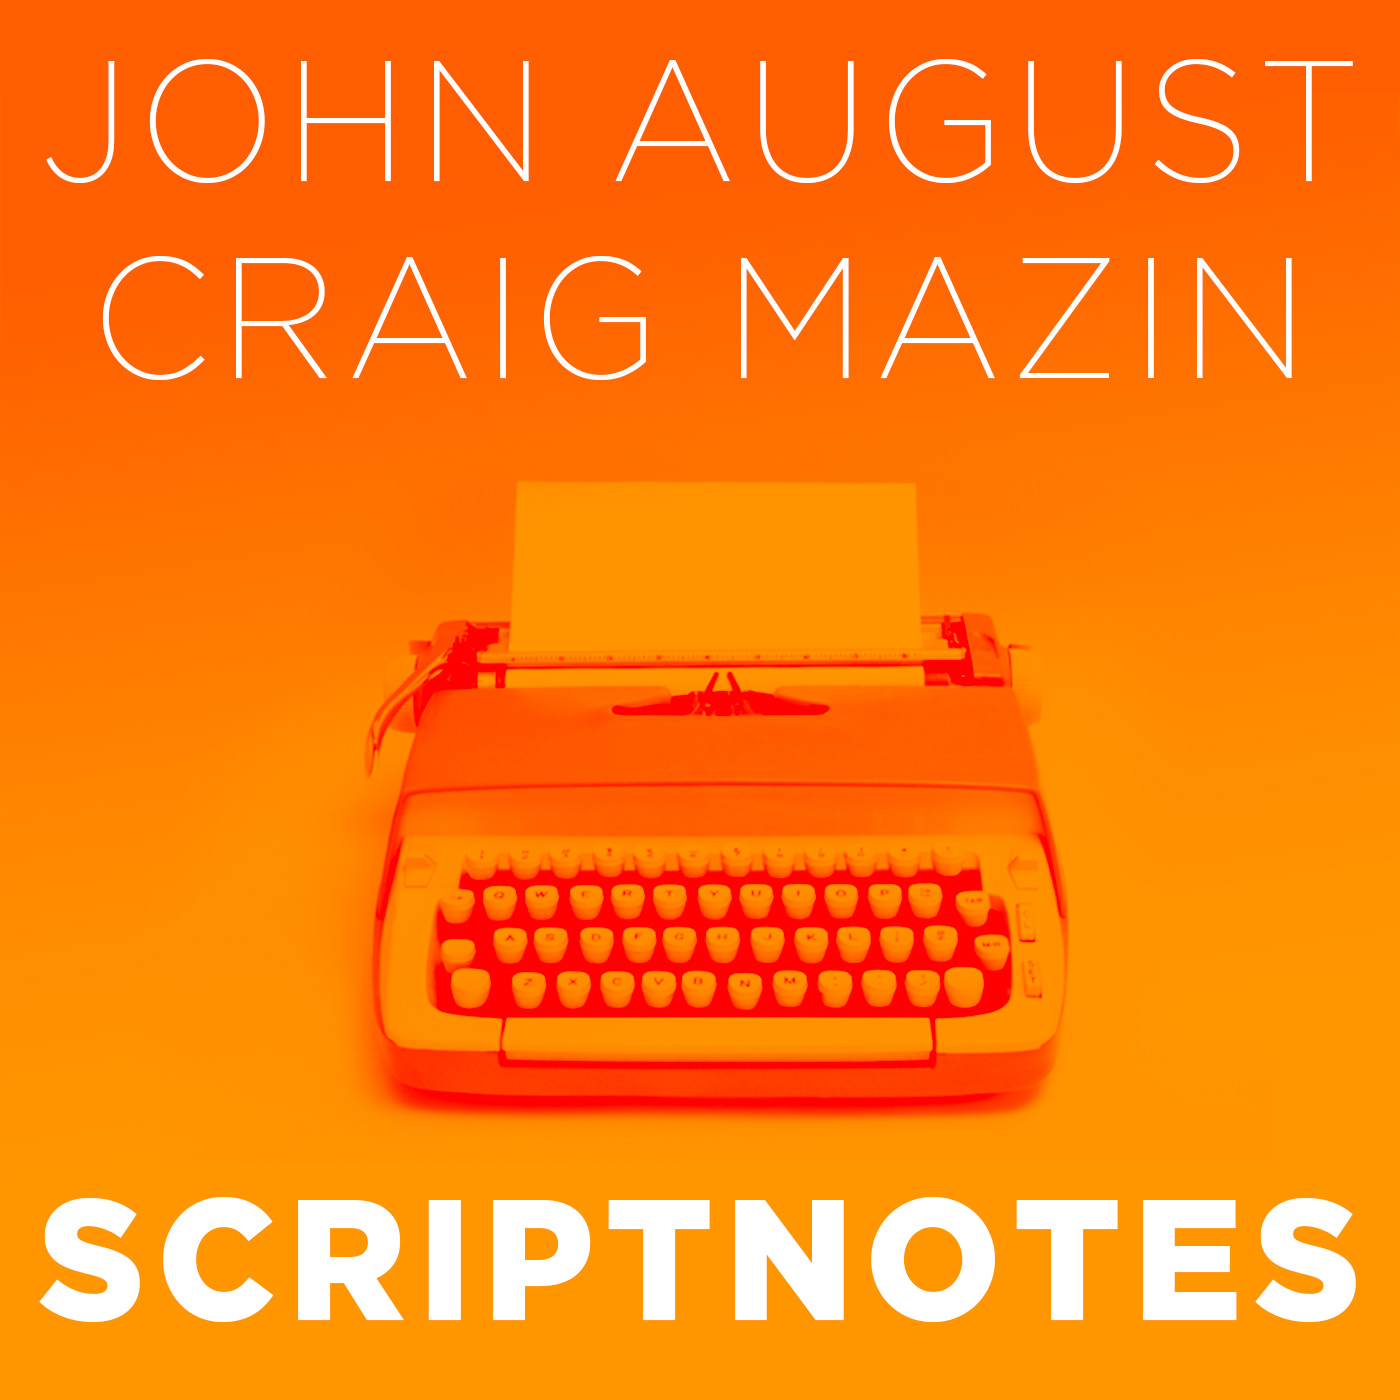 Scriptnotes Podcast:John August and Craig Mazin